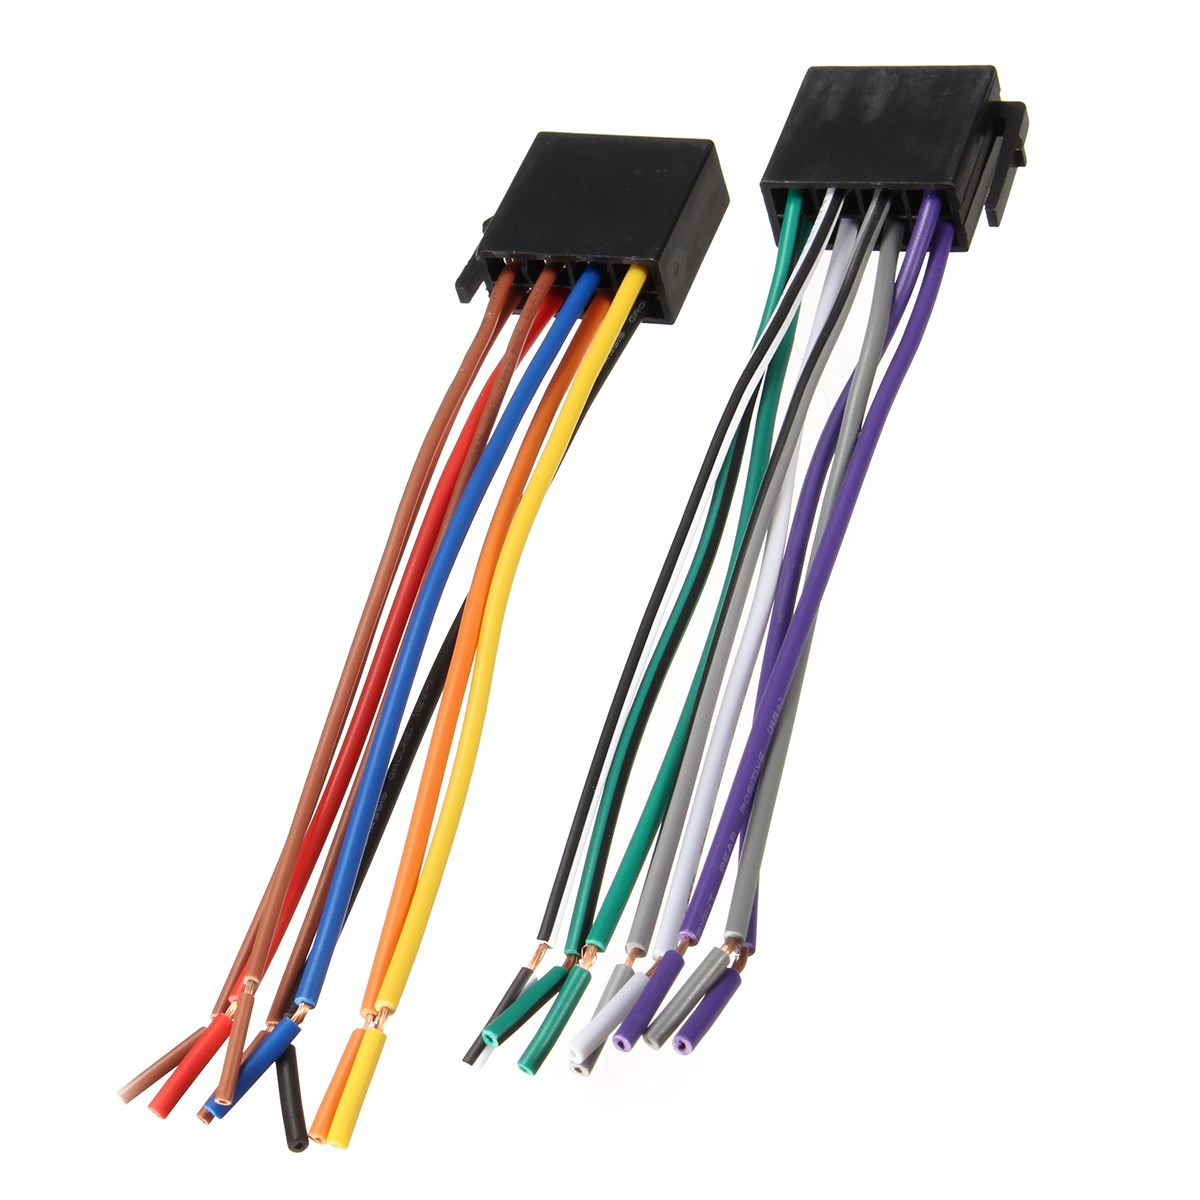 online buy whole auto stereo wiring harness from auto universal wire harness adapter connector cable radio wiring connector plug for auto car stereo system